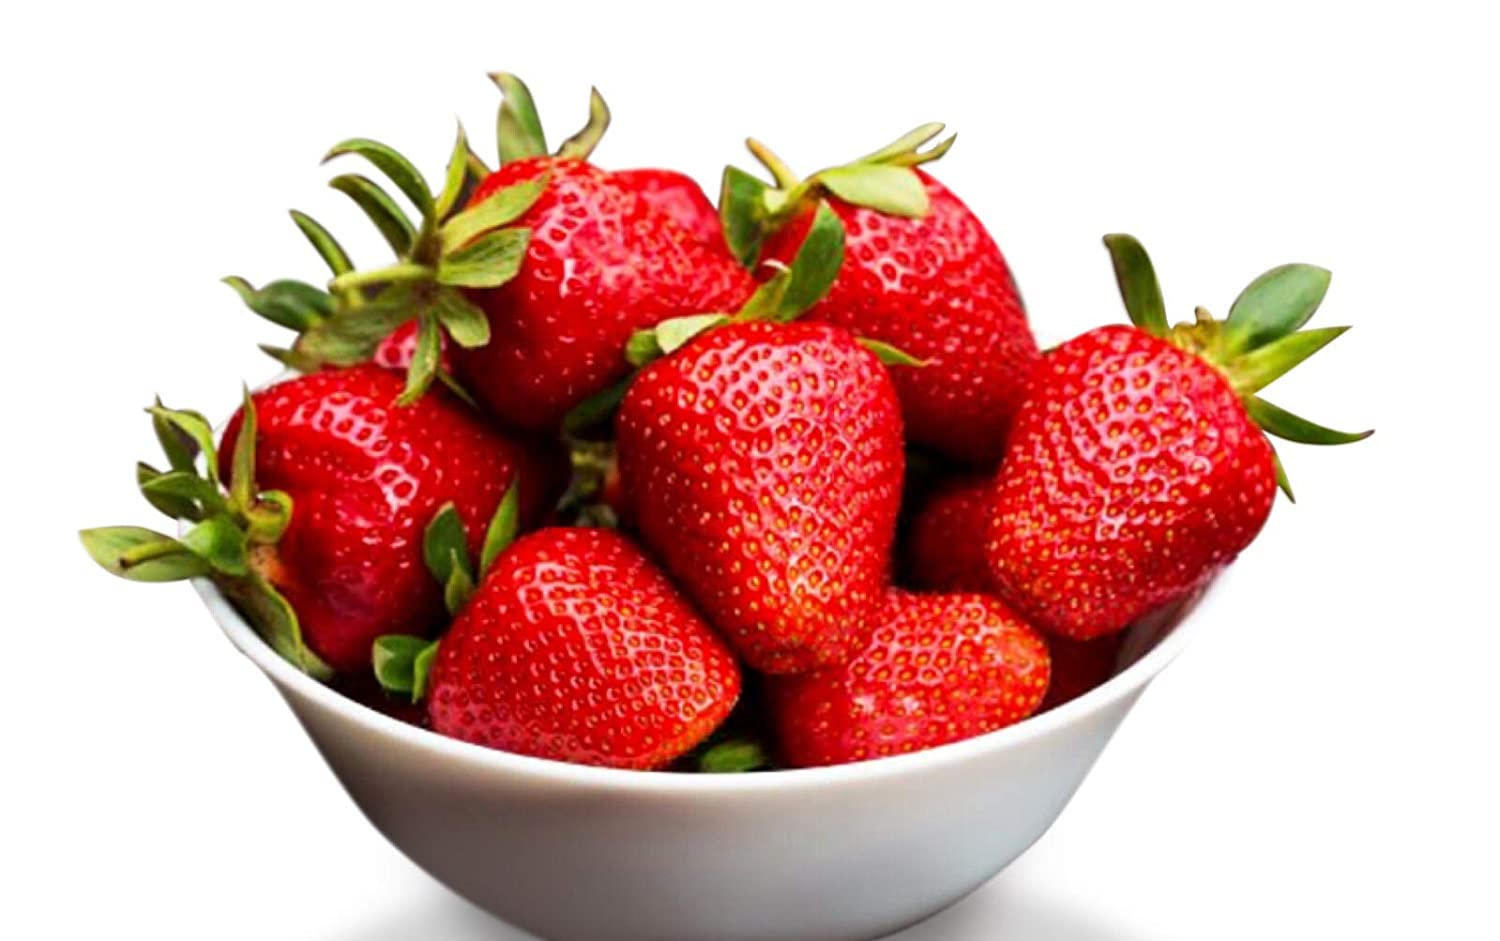 Organic Earliglow Strawberry 315 Seeds UPC 600188194739 Commercial Pick-Your-Own Variety 1 Free Plant Marker